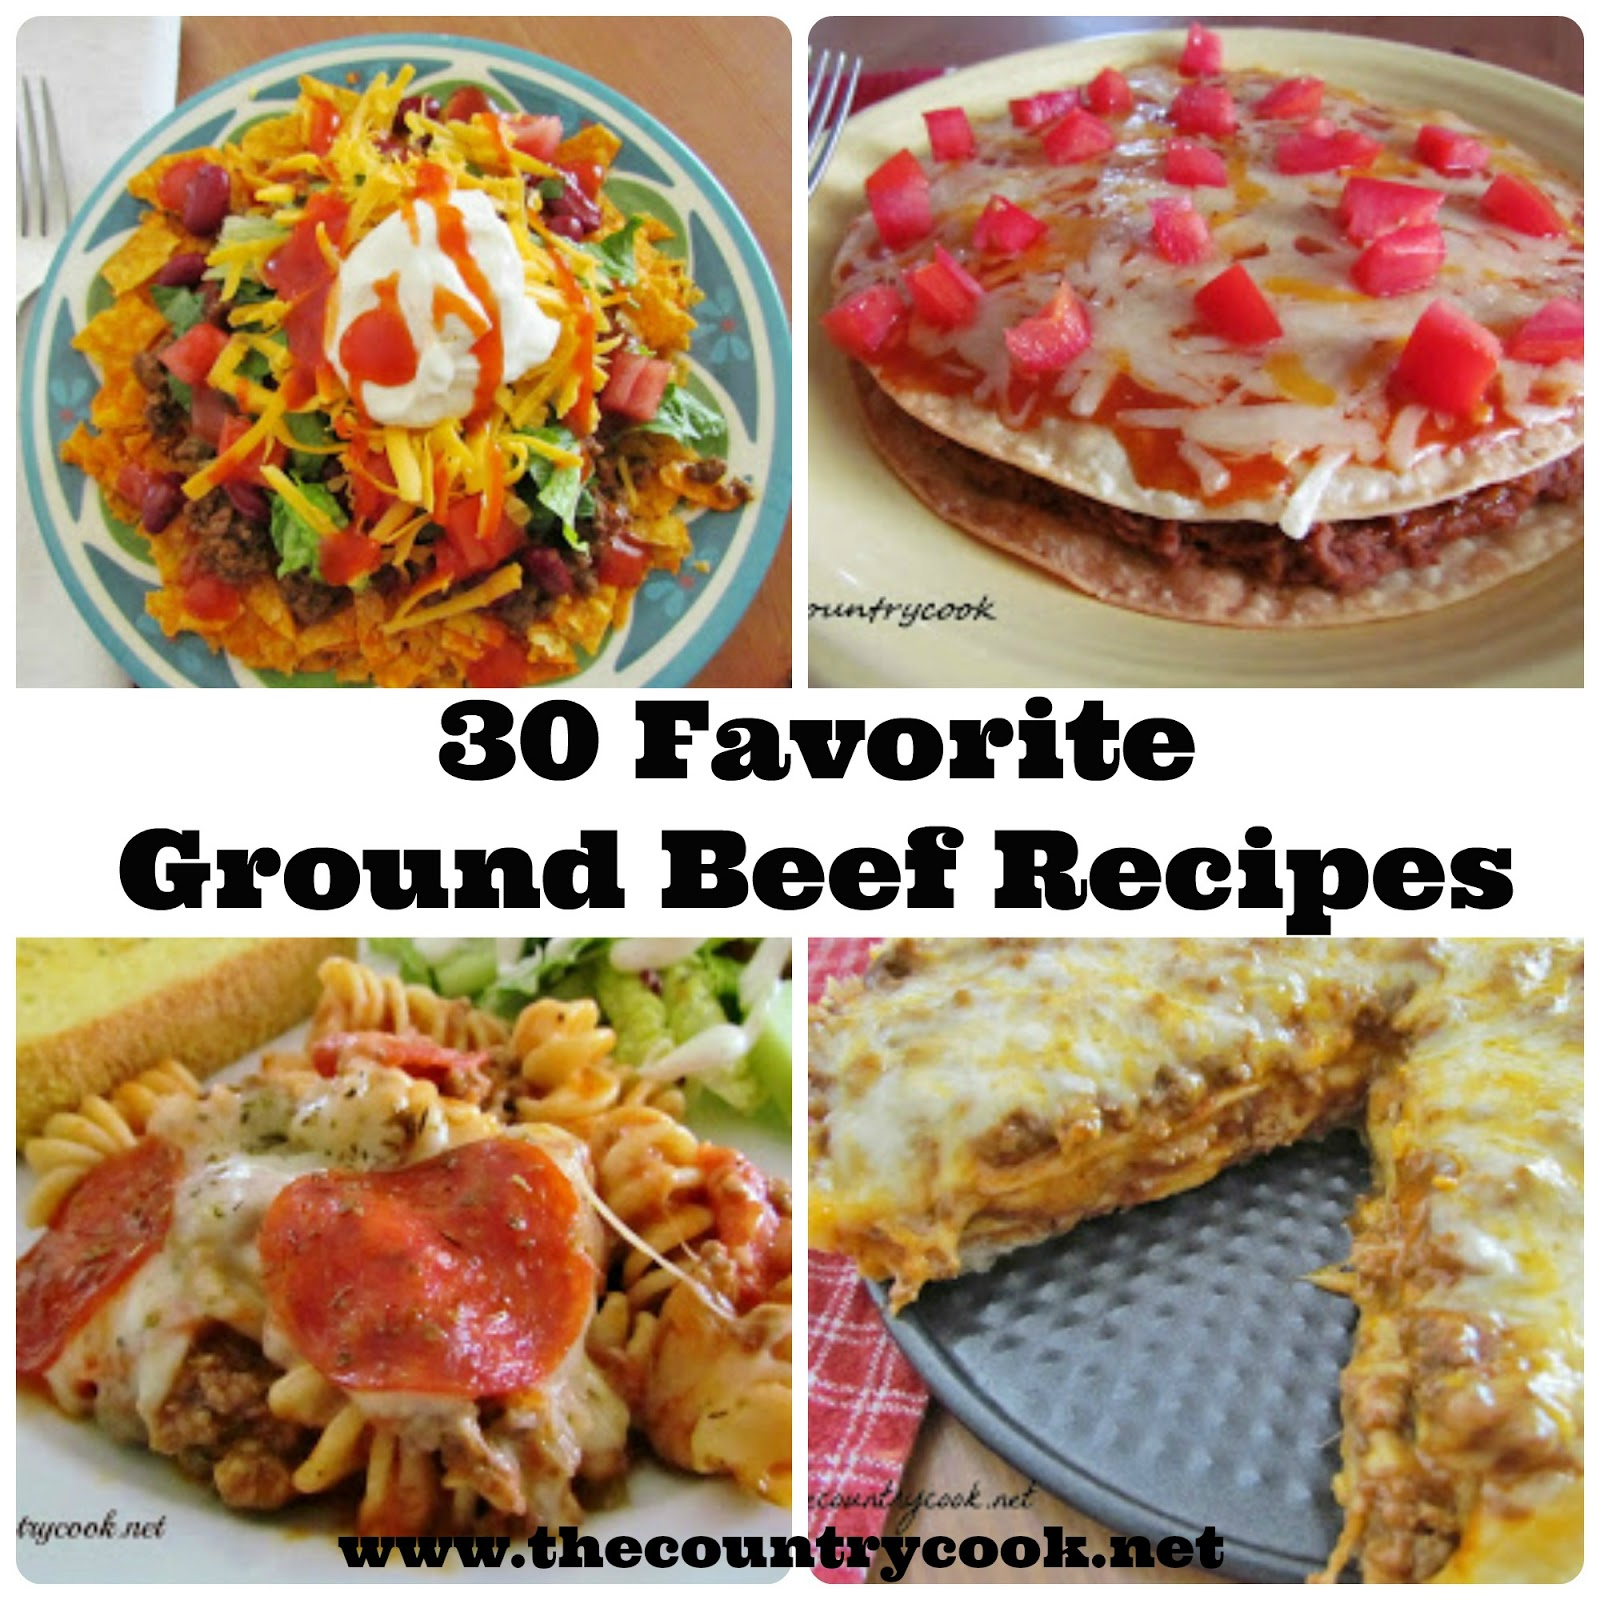 30 favorite ground beef recipes - the country cook